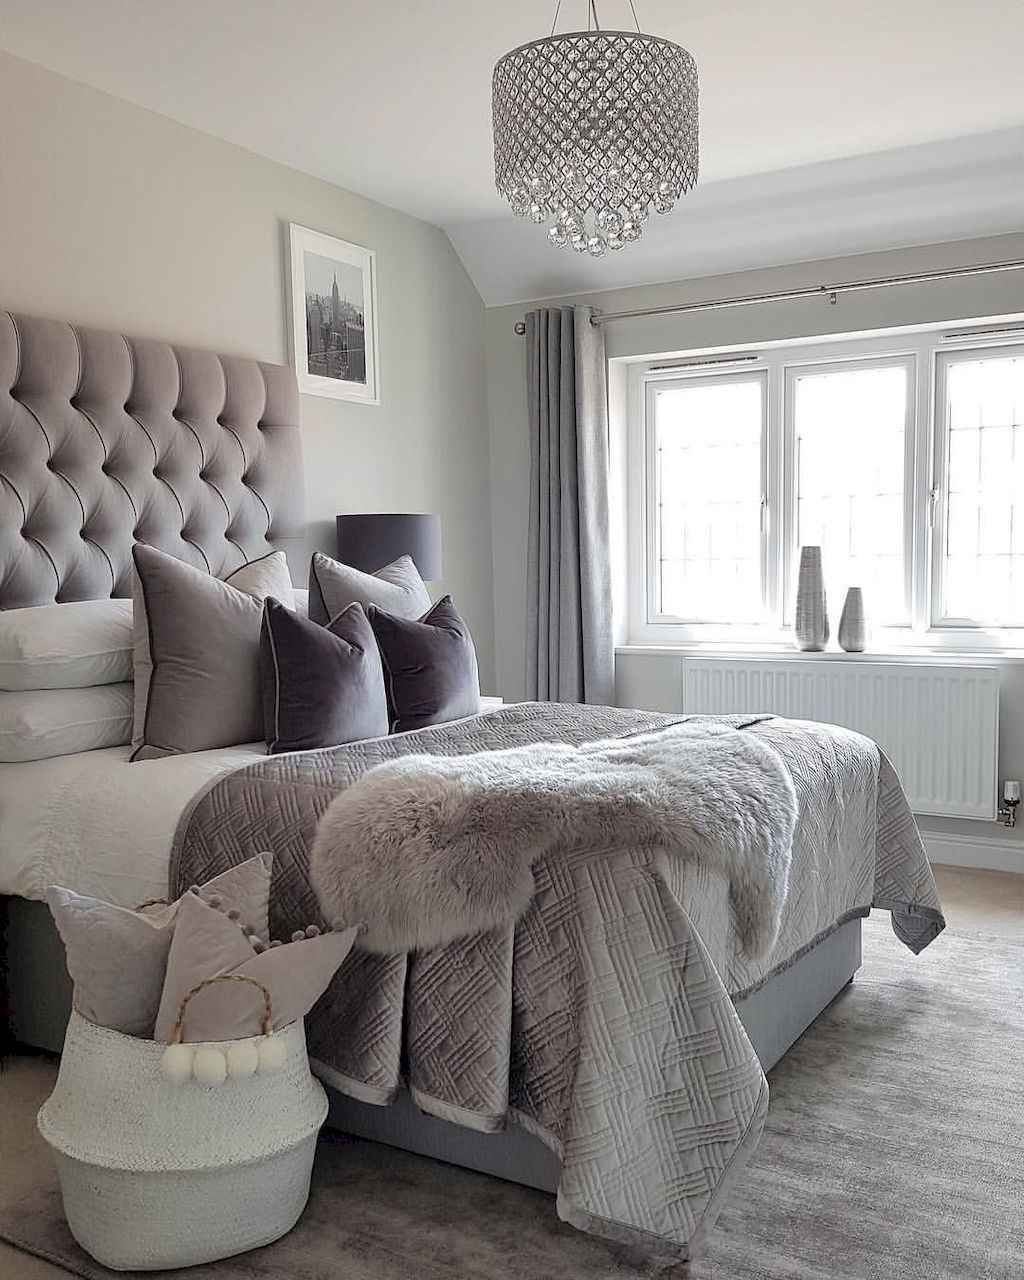 Catchy Bedroom Ideas That Will Make You Cozy 27